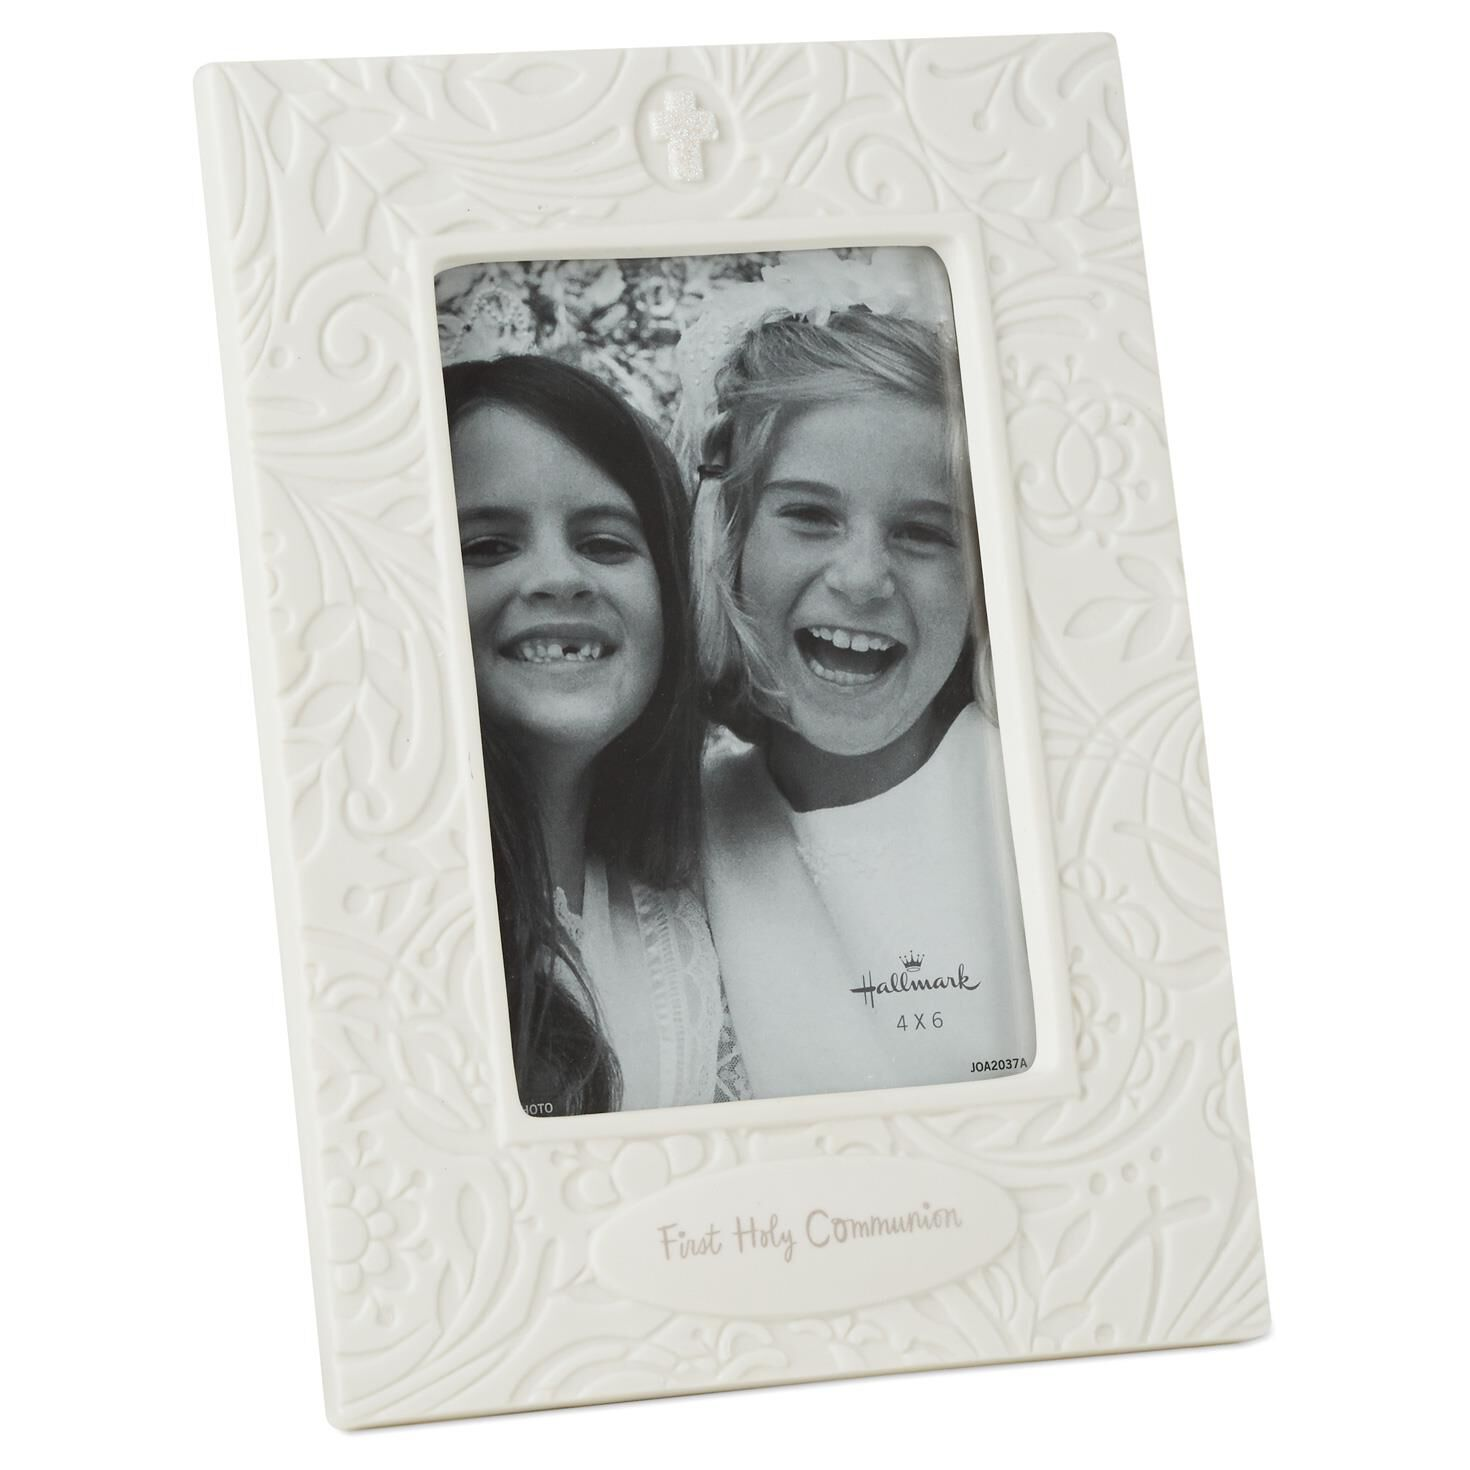 First holy communion picture frame 4x6 figurines hallmark jeuxipadfo Gallery